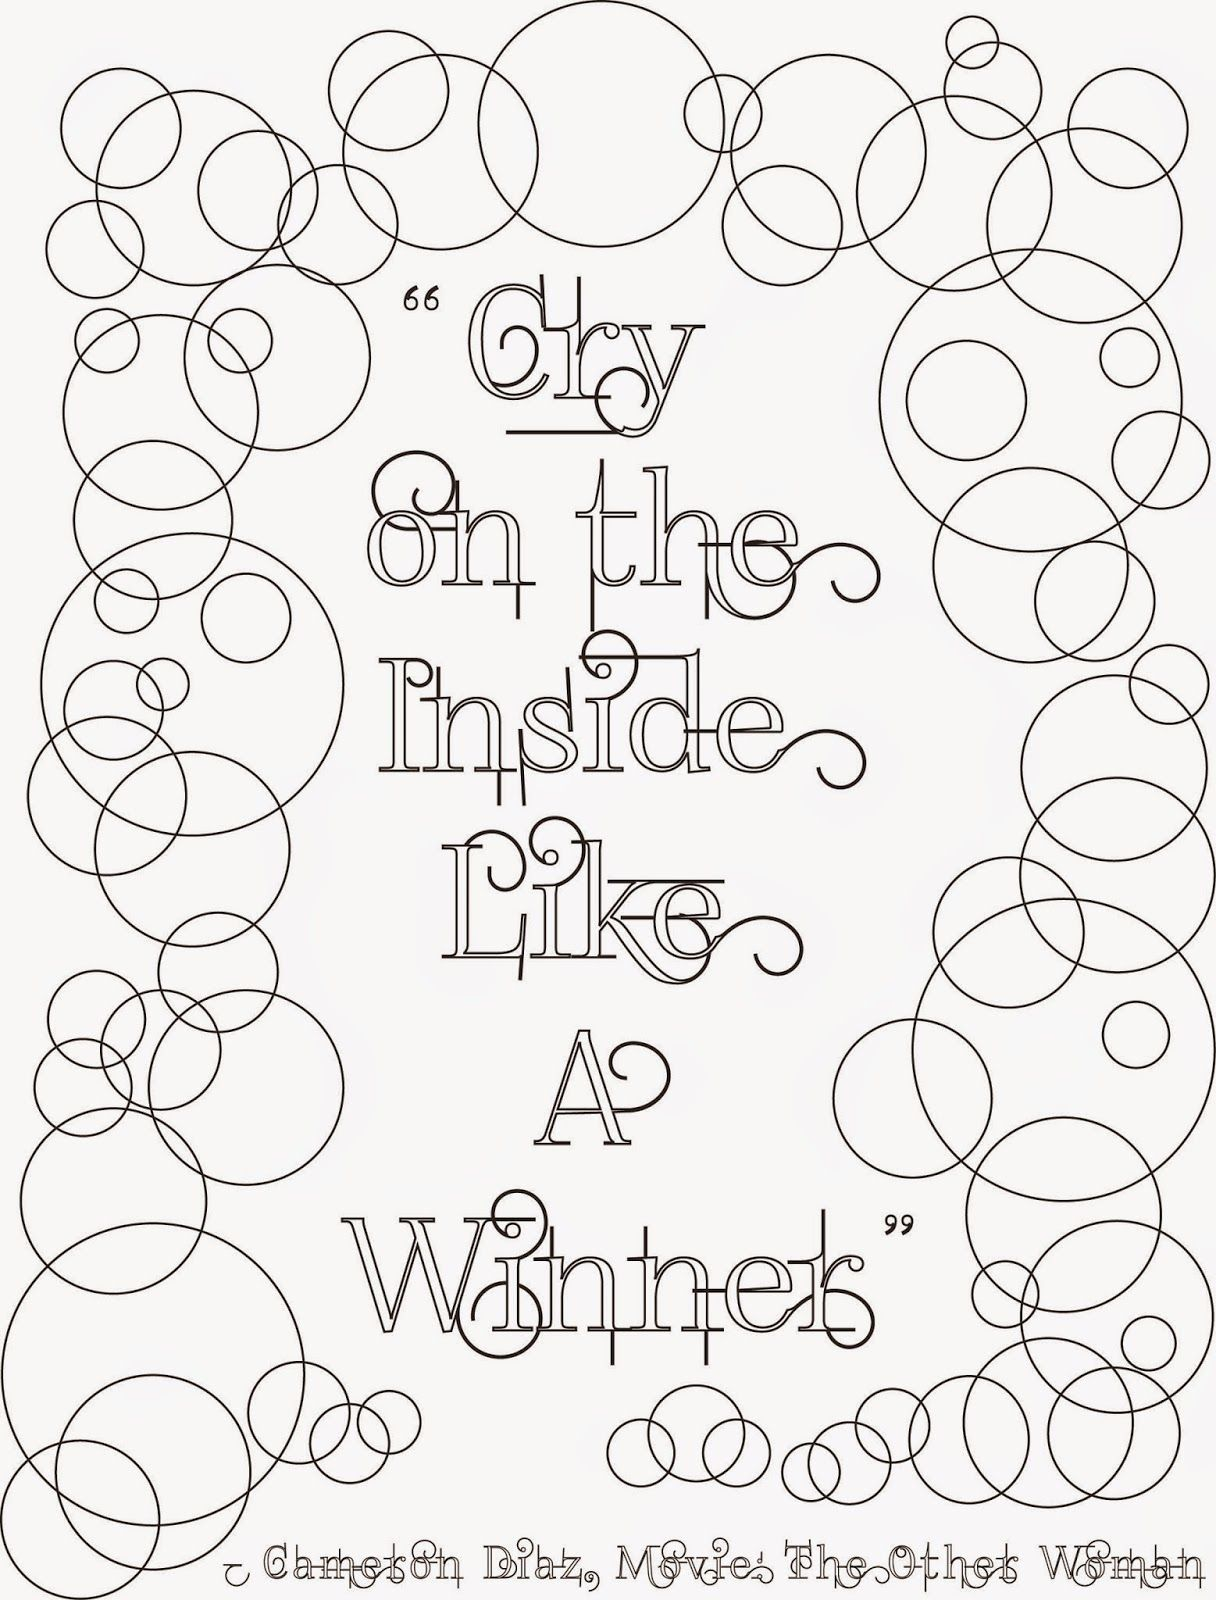 Gr grown up colouring in pages - Coloring Pages For Adults Quotes Cry On The Inside Adult Coloring Page Stefanie Girard Quote